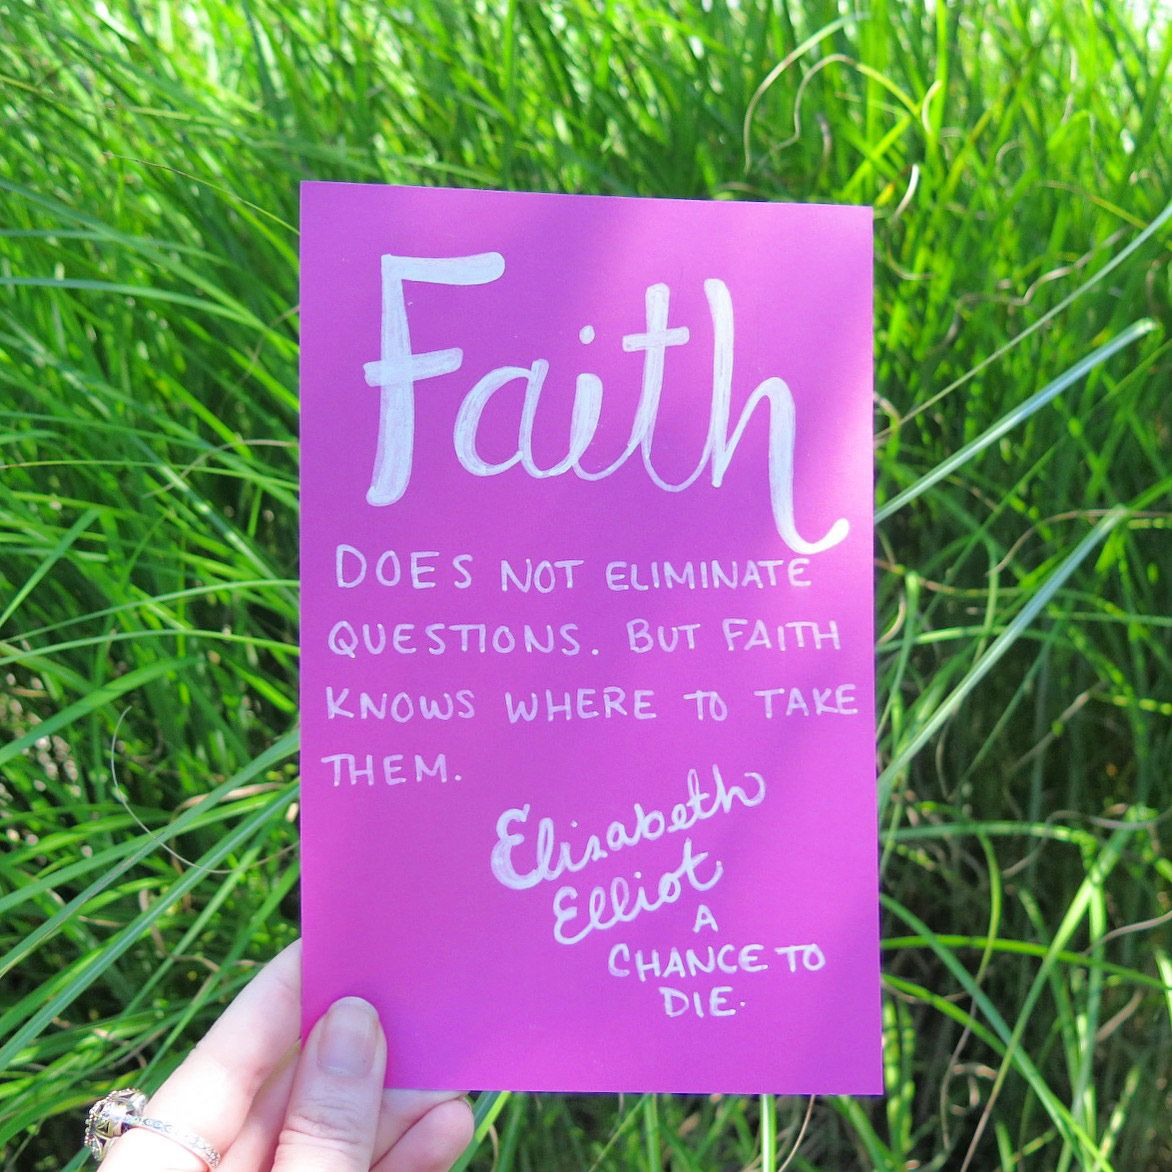 60/100 100 Days of Inspiration Faith does not eliminate questions. But faith knows where to take them. - Elisabeth Elliot, A Chance To Die.  #100DayProject